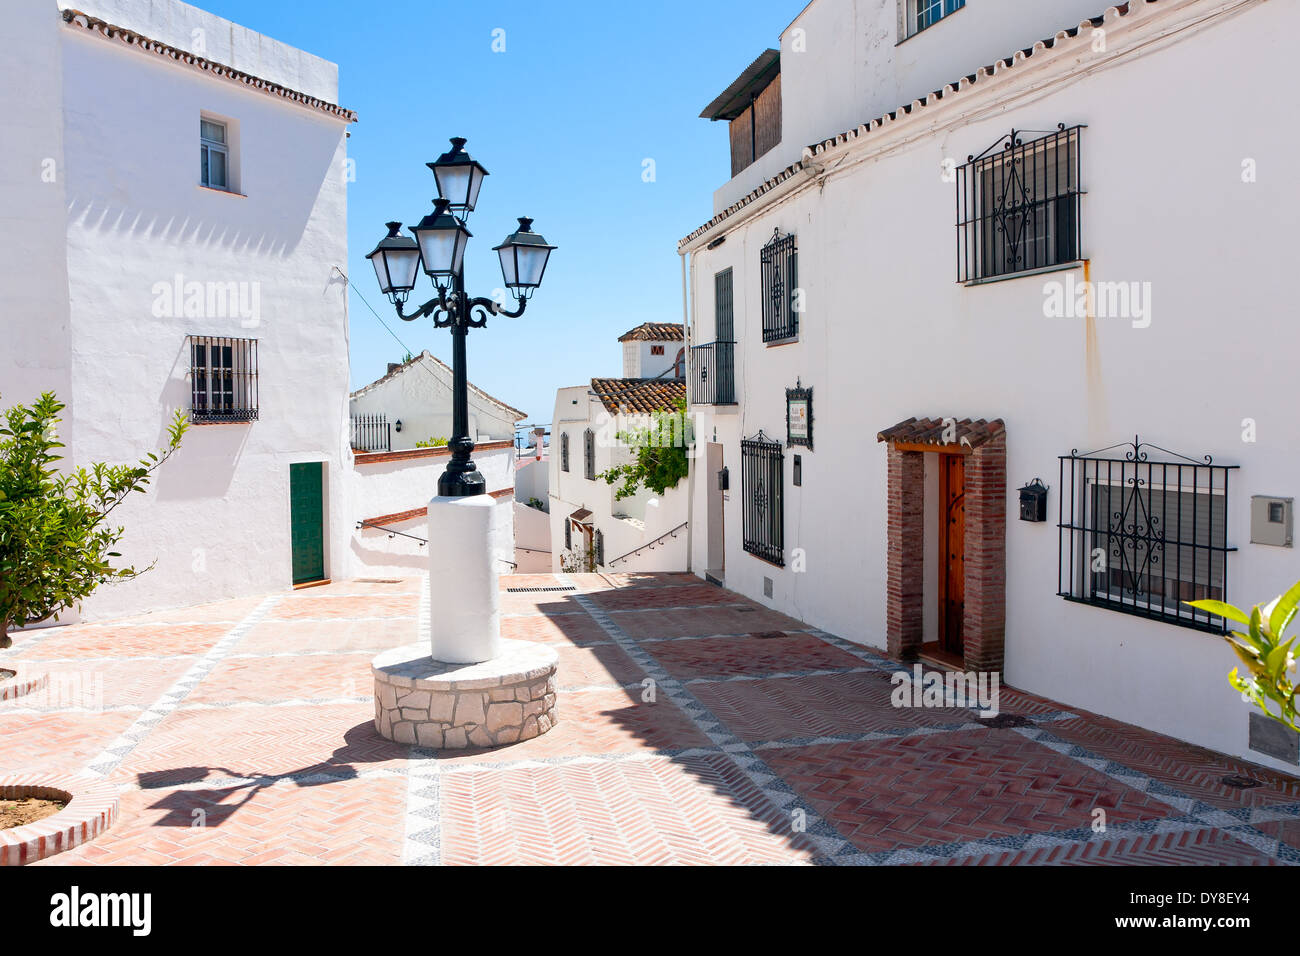 Mijas Pueblo. Francisco Gimenez Alarcon Square Stock Photo